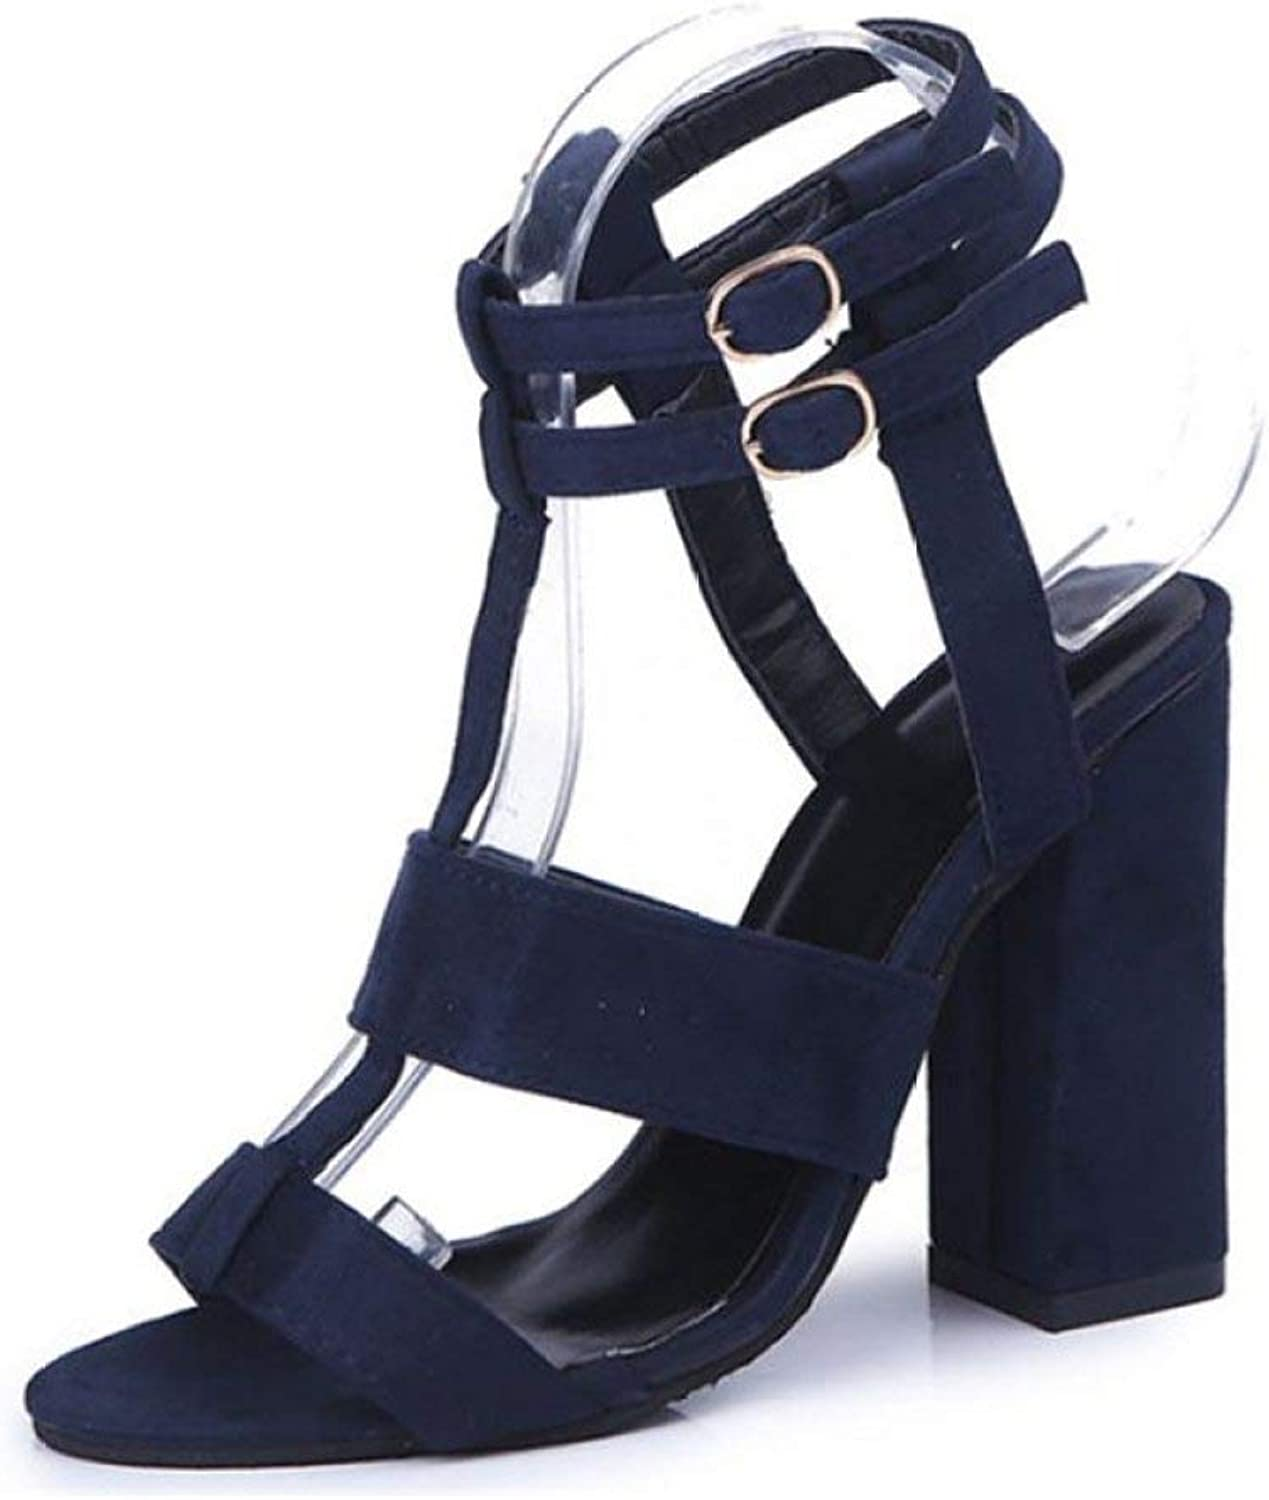 Women High Heels Sandals Summer Double Buckle T-Strap Square Heeled Female Party Wedding shoes